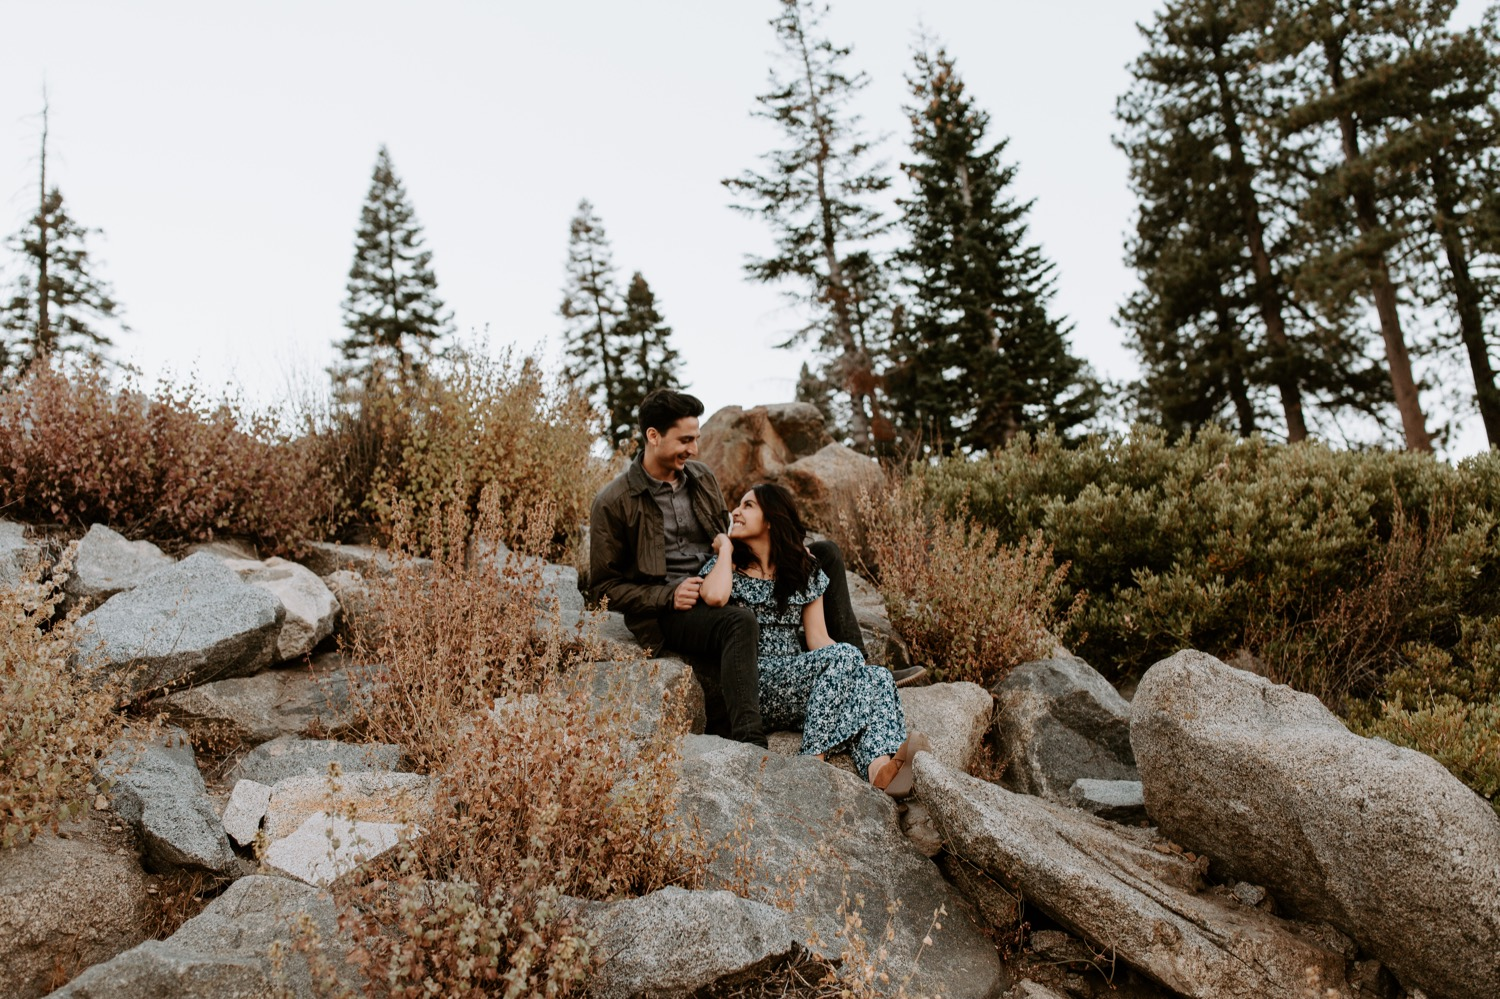 32_Yosemite-National-Park-Engagement-Session-Emily-Magers-Photography79.jpg